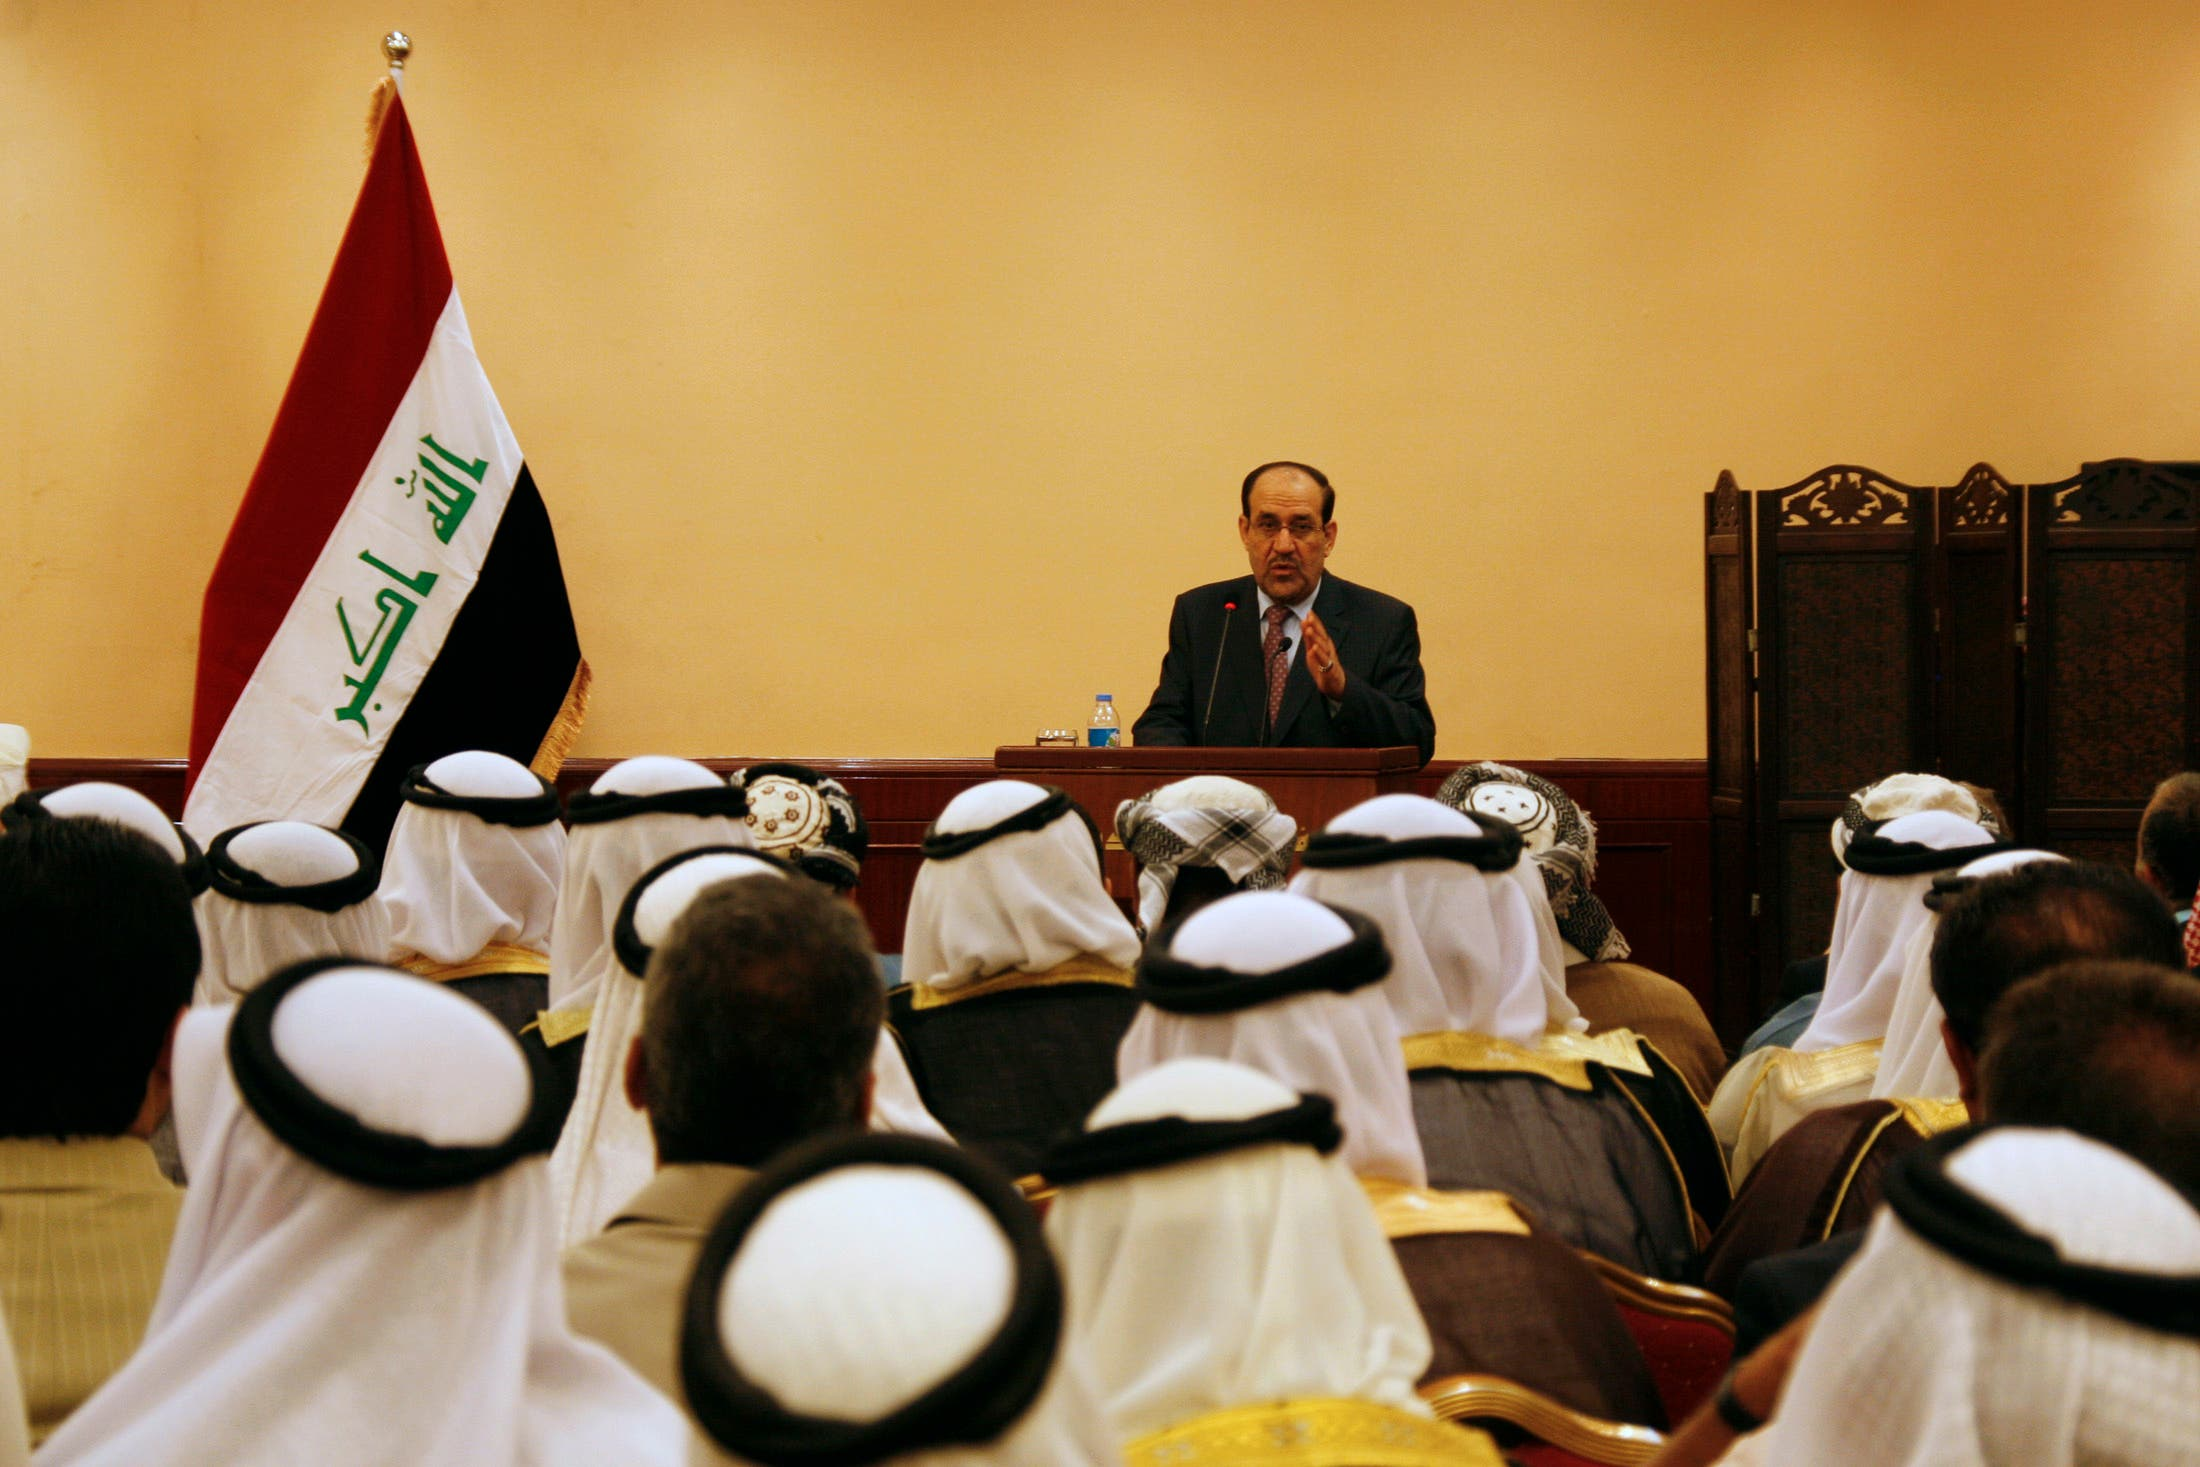 Iraq's Prime Minister Nuri al-Maliki speaks during a meeting with tribal leaders in Mosul in 2012. (AFP)